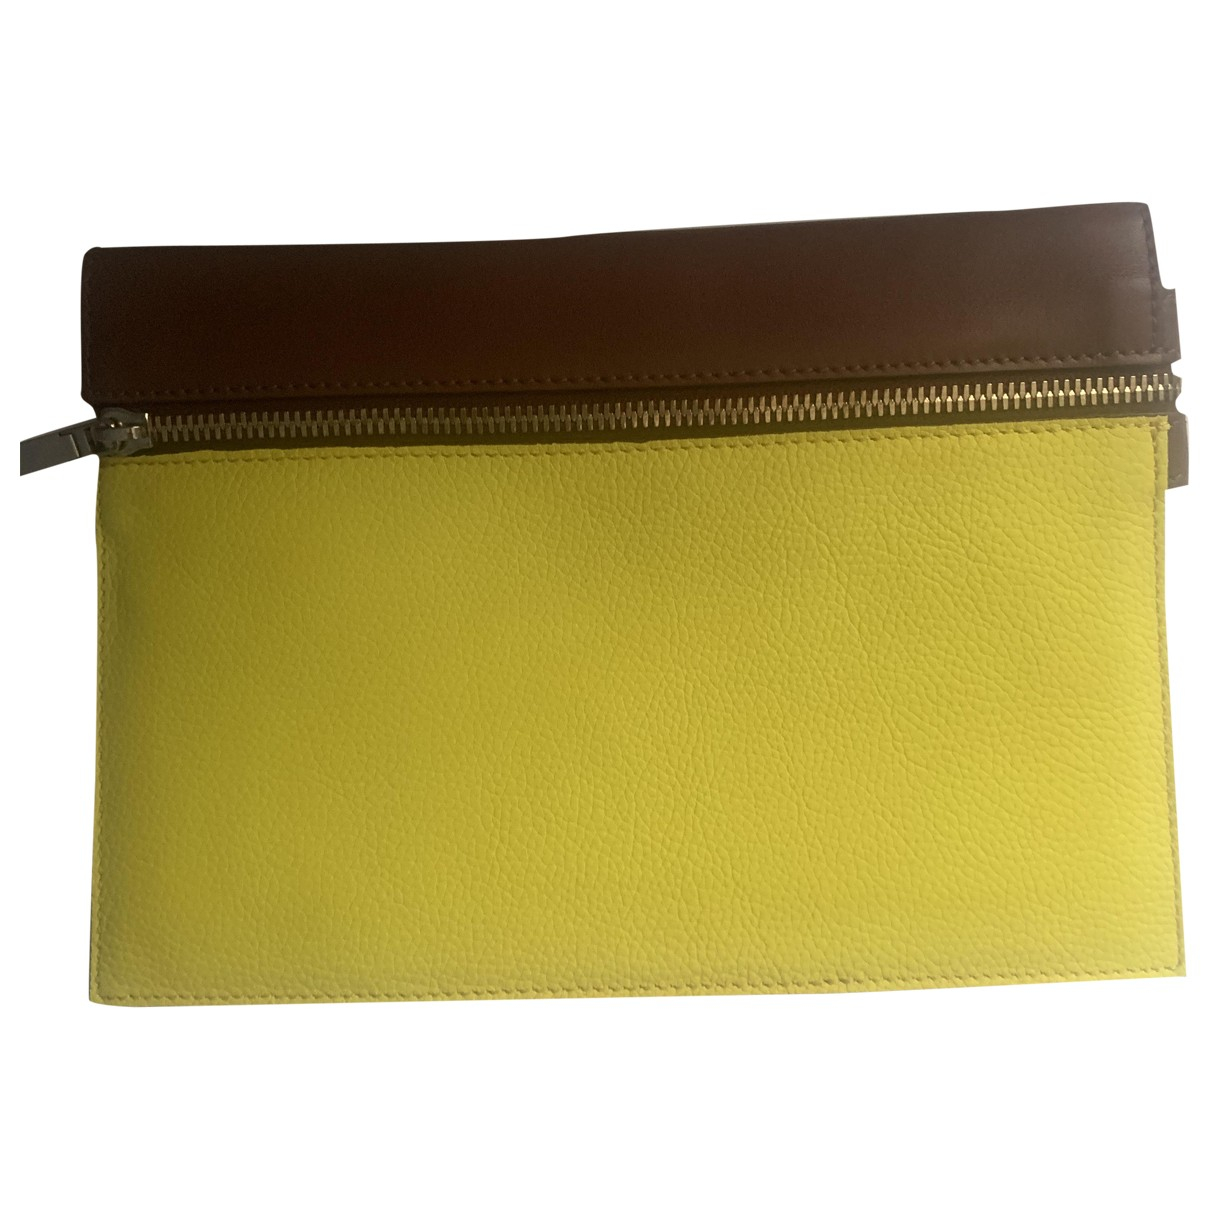 Victoria Beckham \N Yellow Leather Clutch bag for Women \N